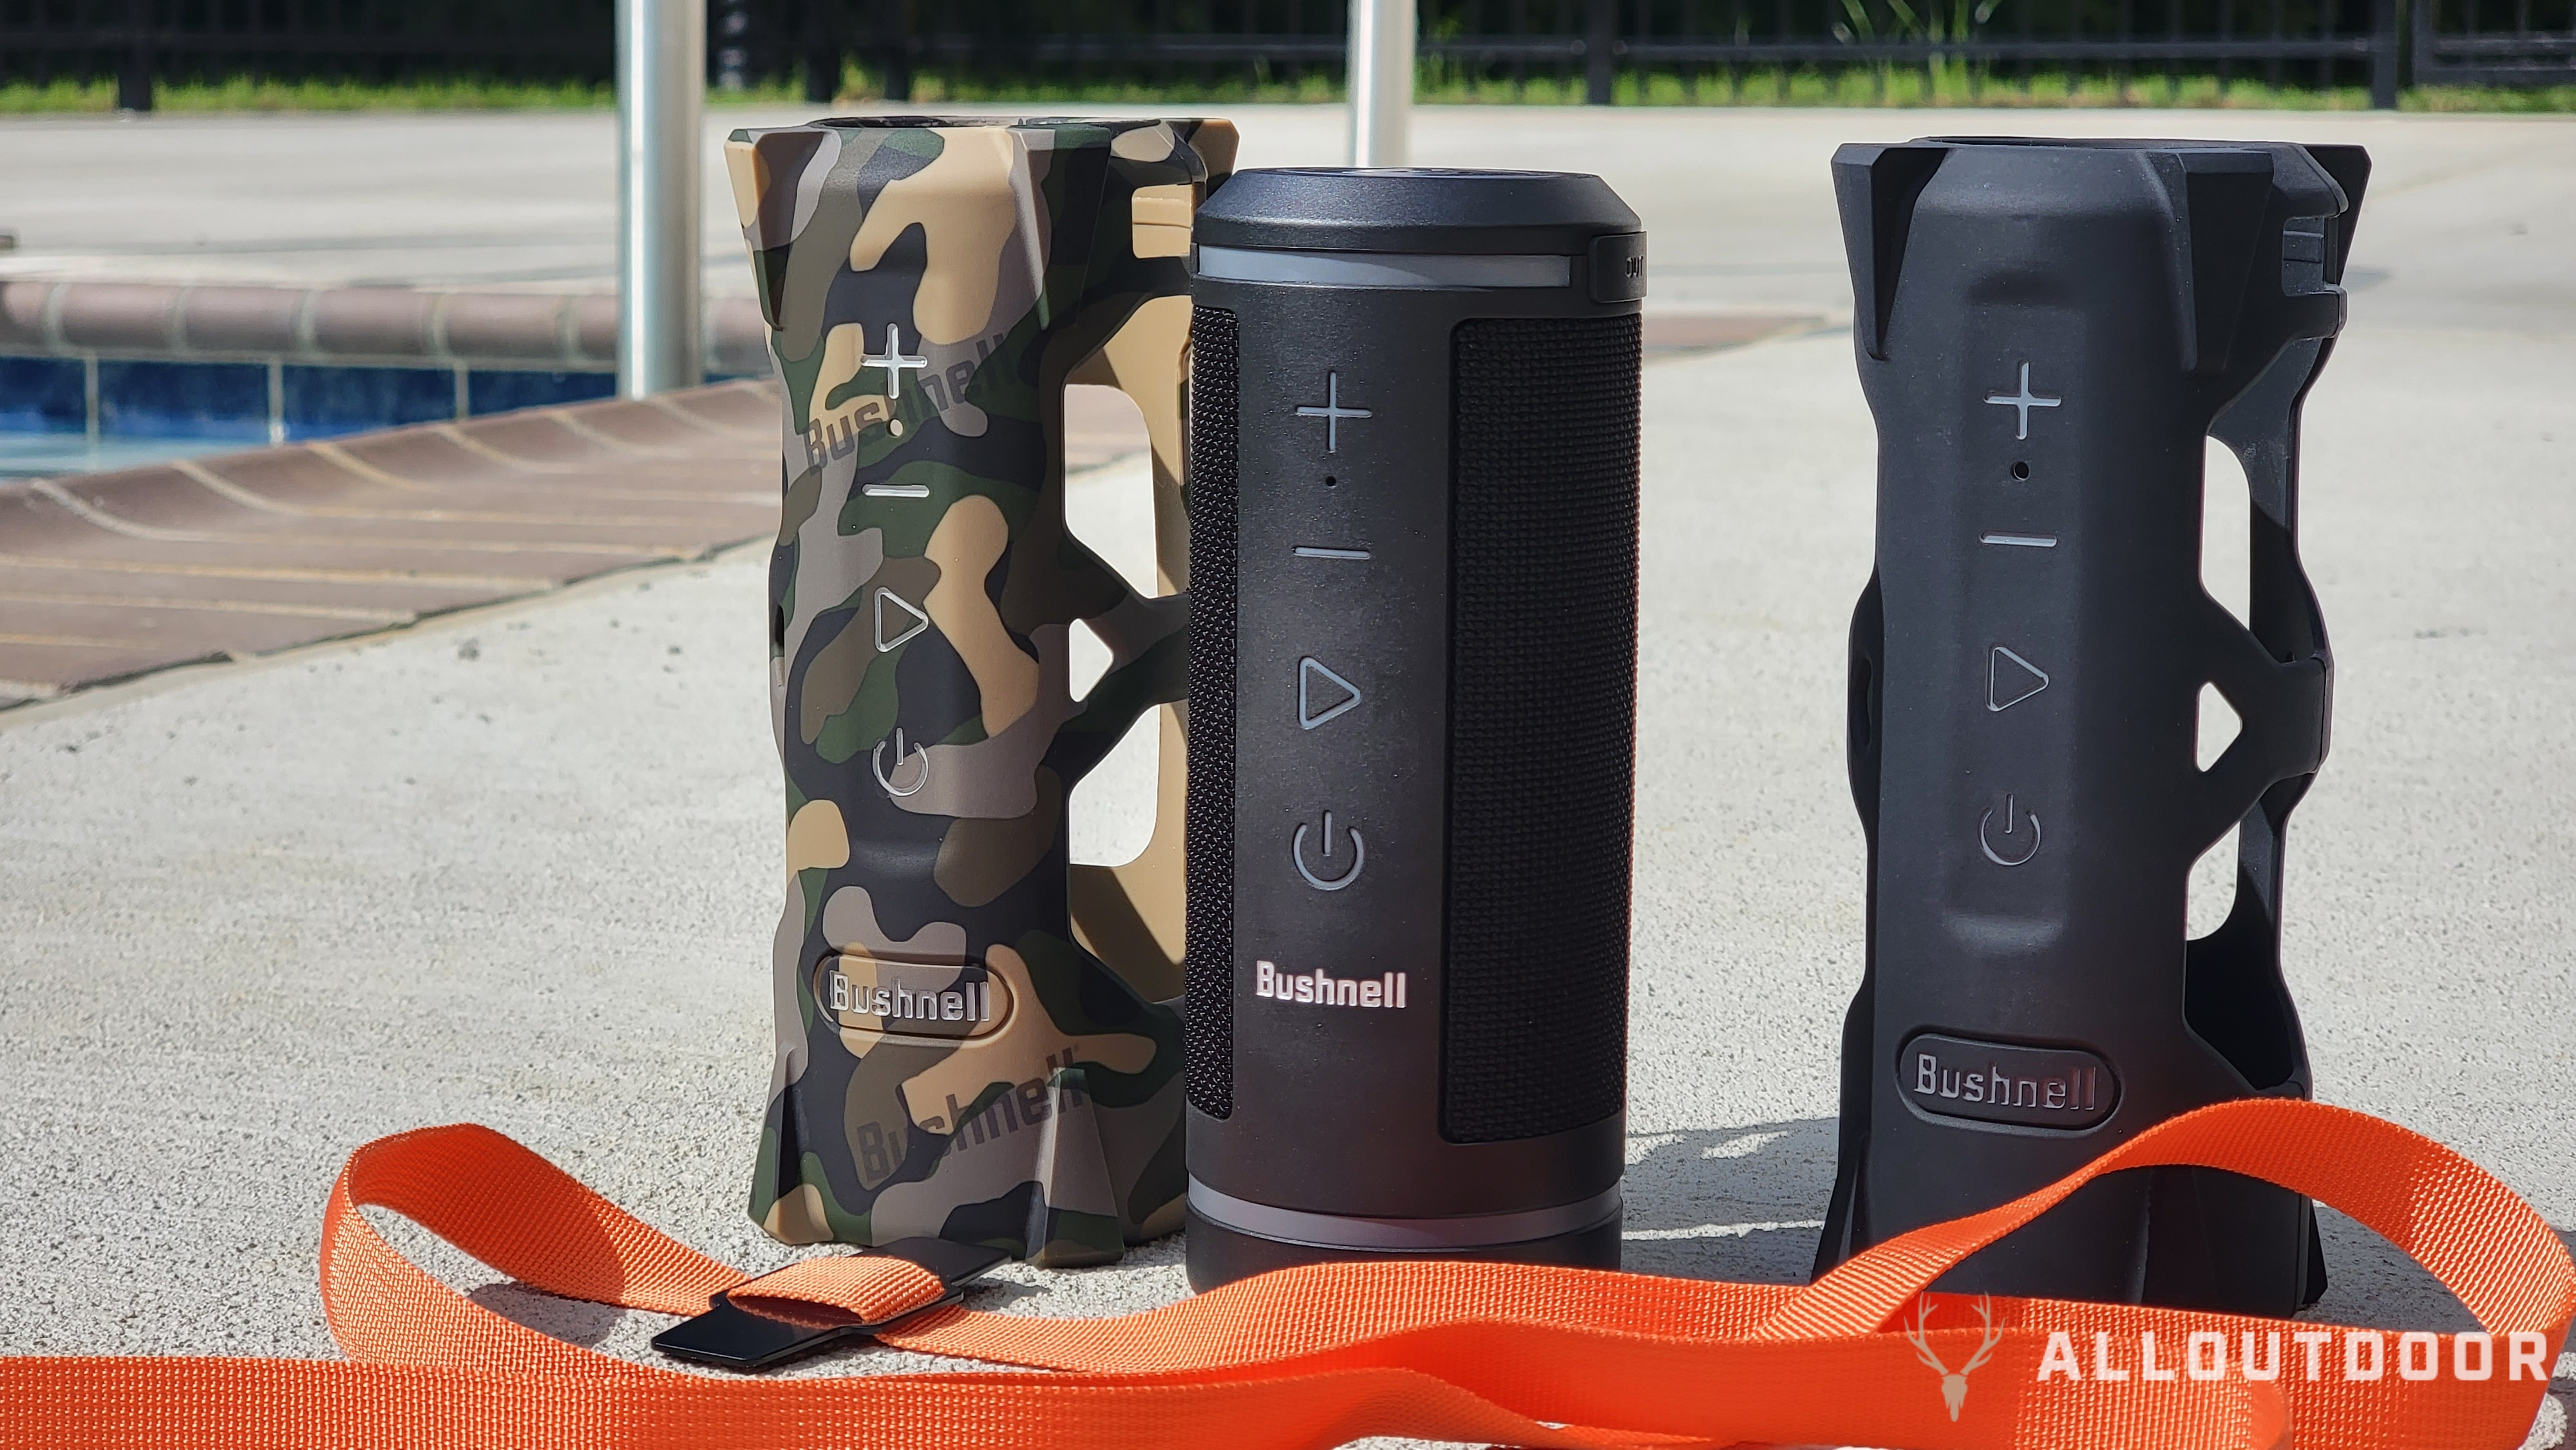 AOD Review: The Bushnell Outdoorsman Bluetooth Speaker